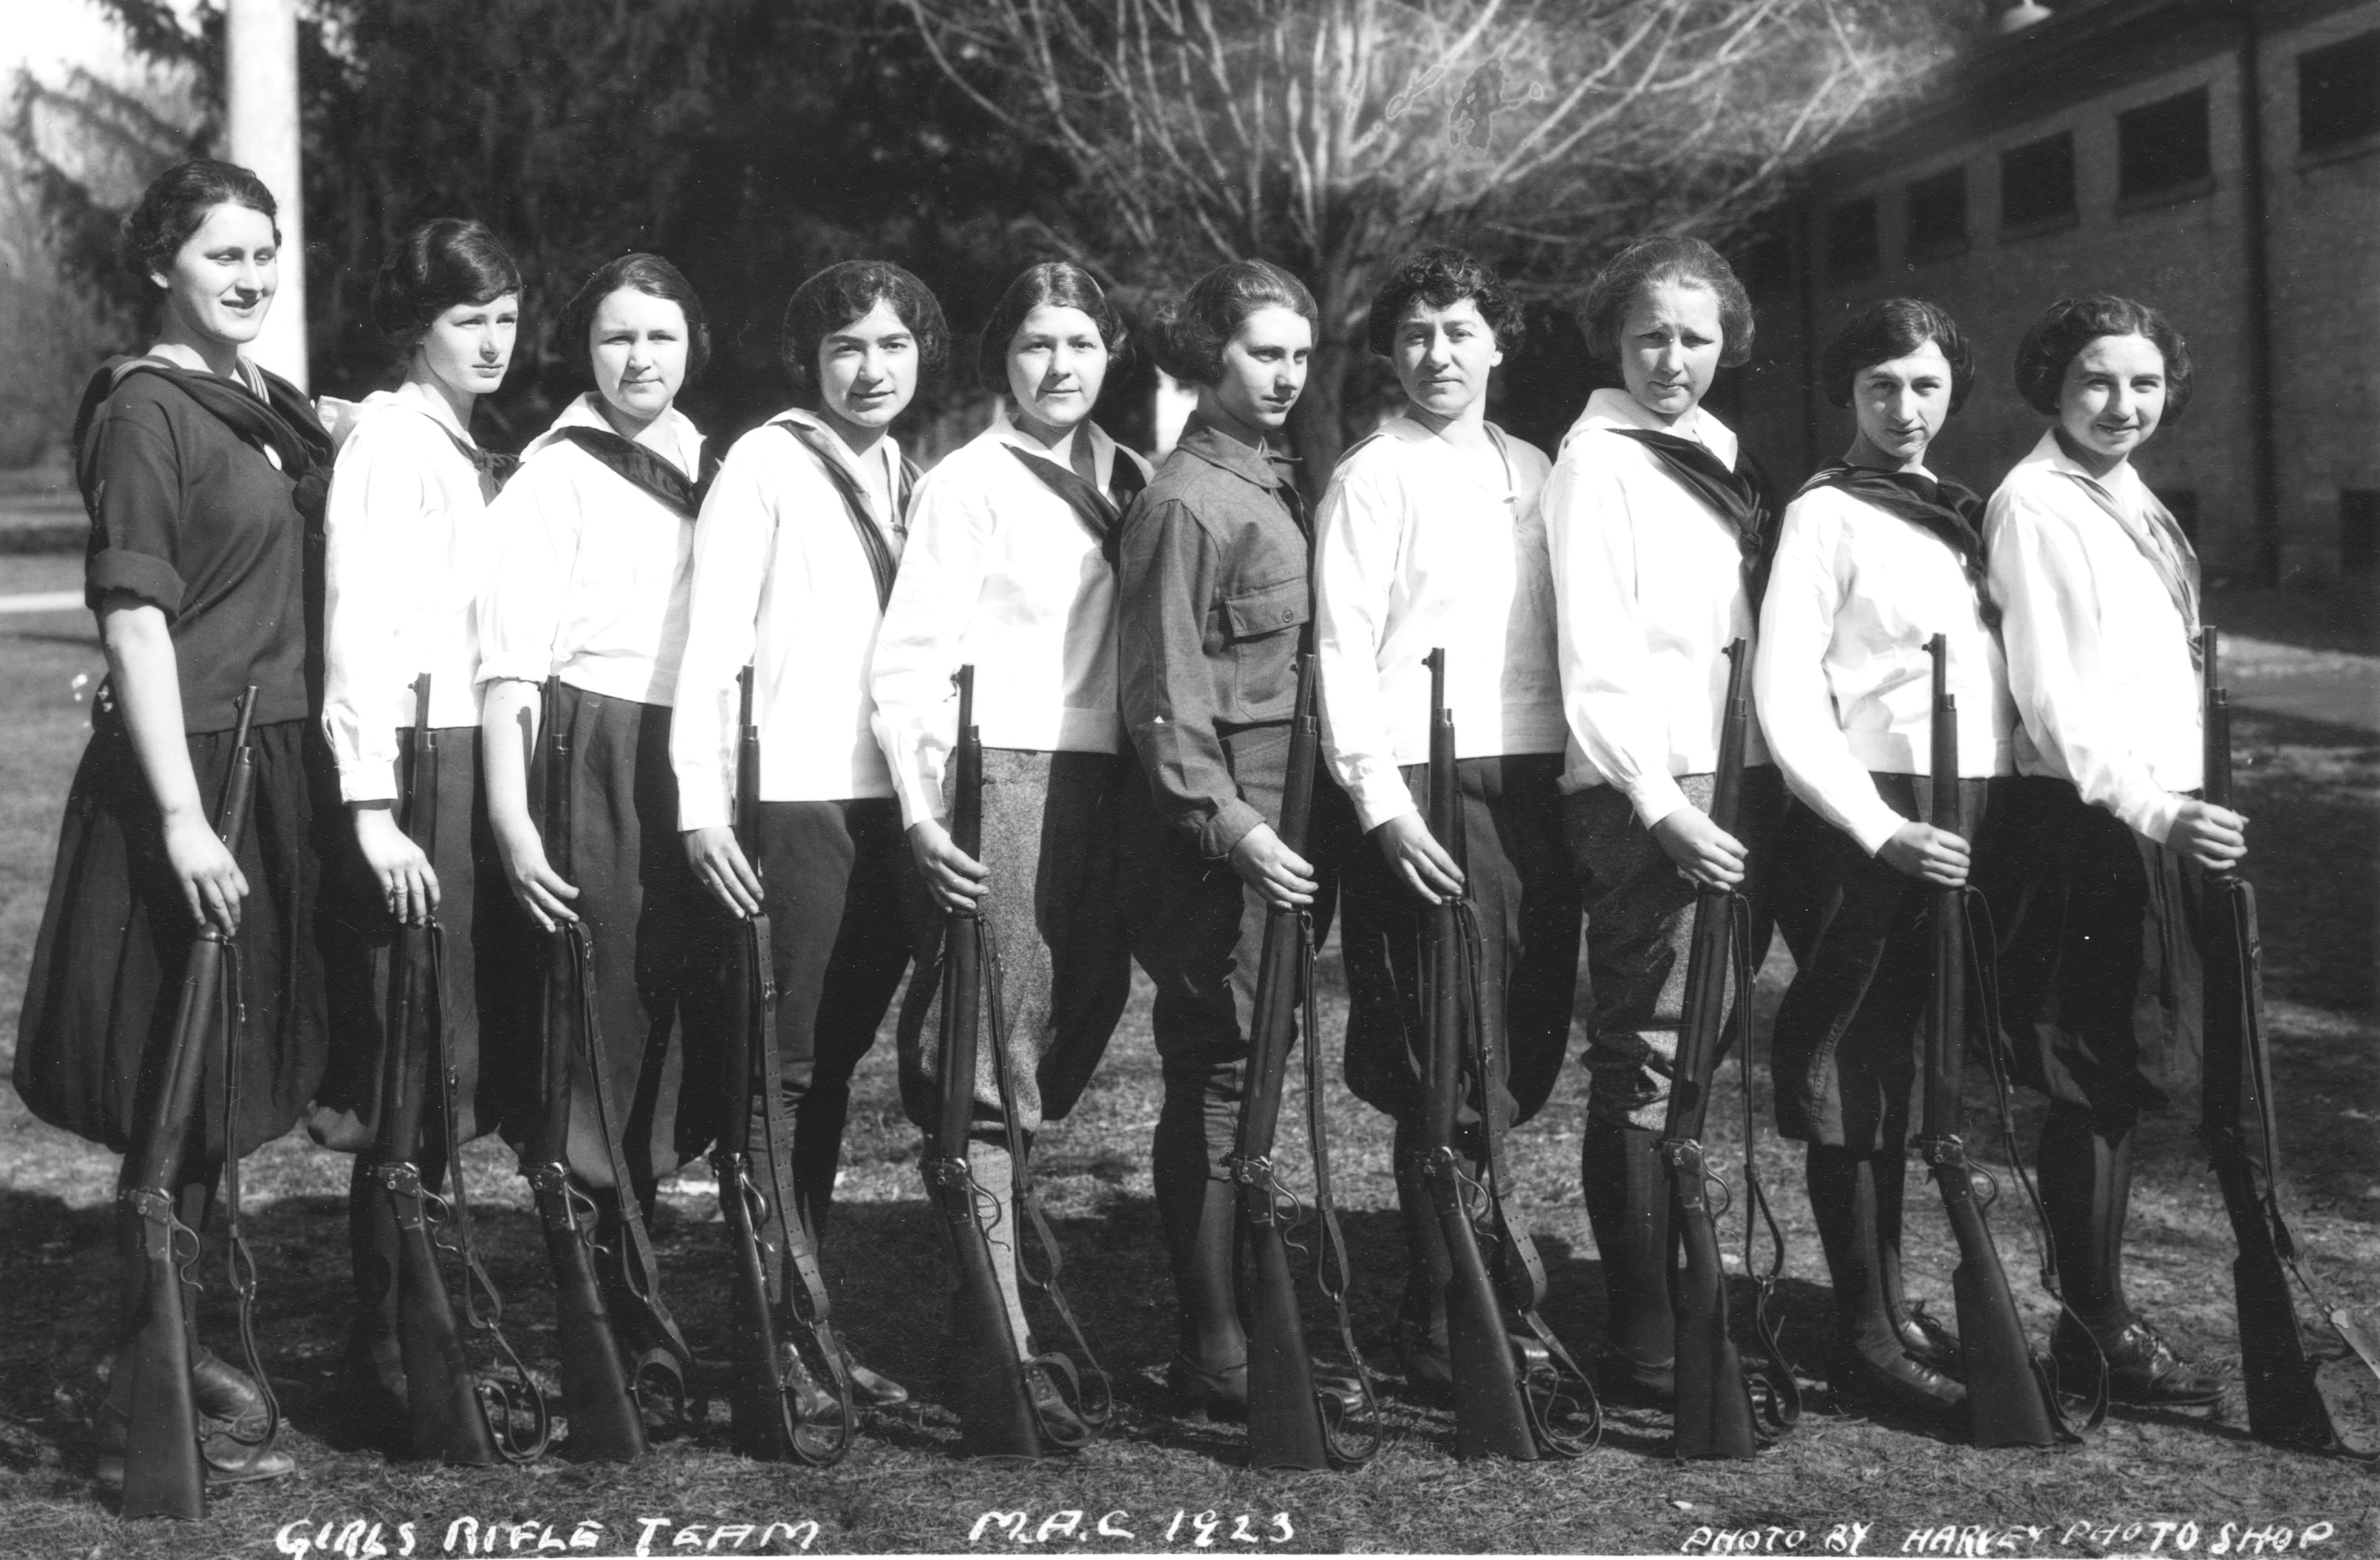 Women's Rifle Team, 1923